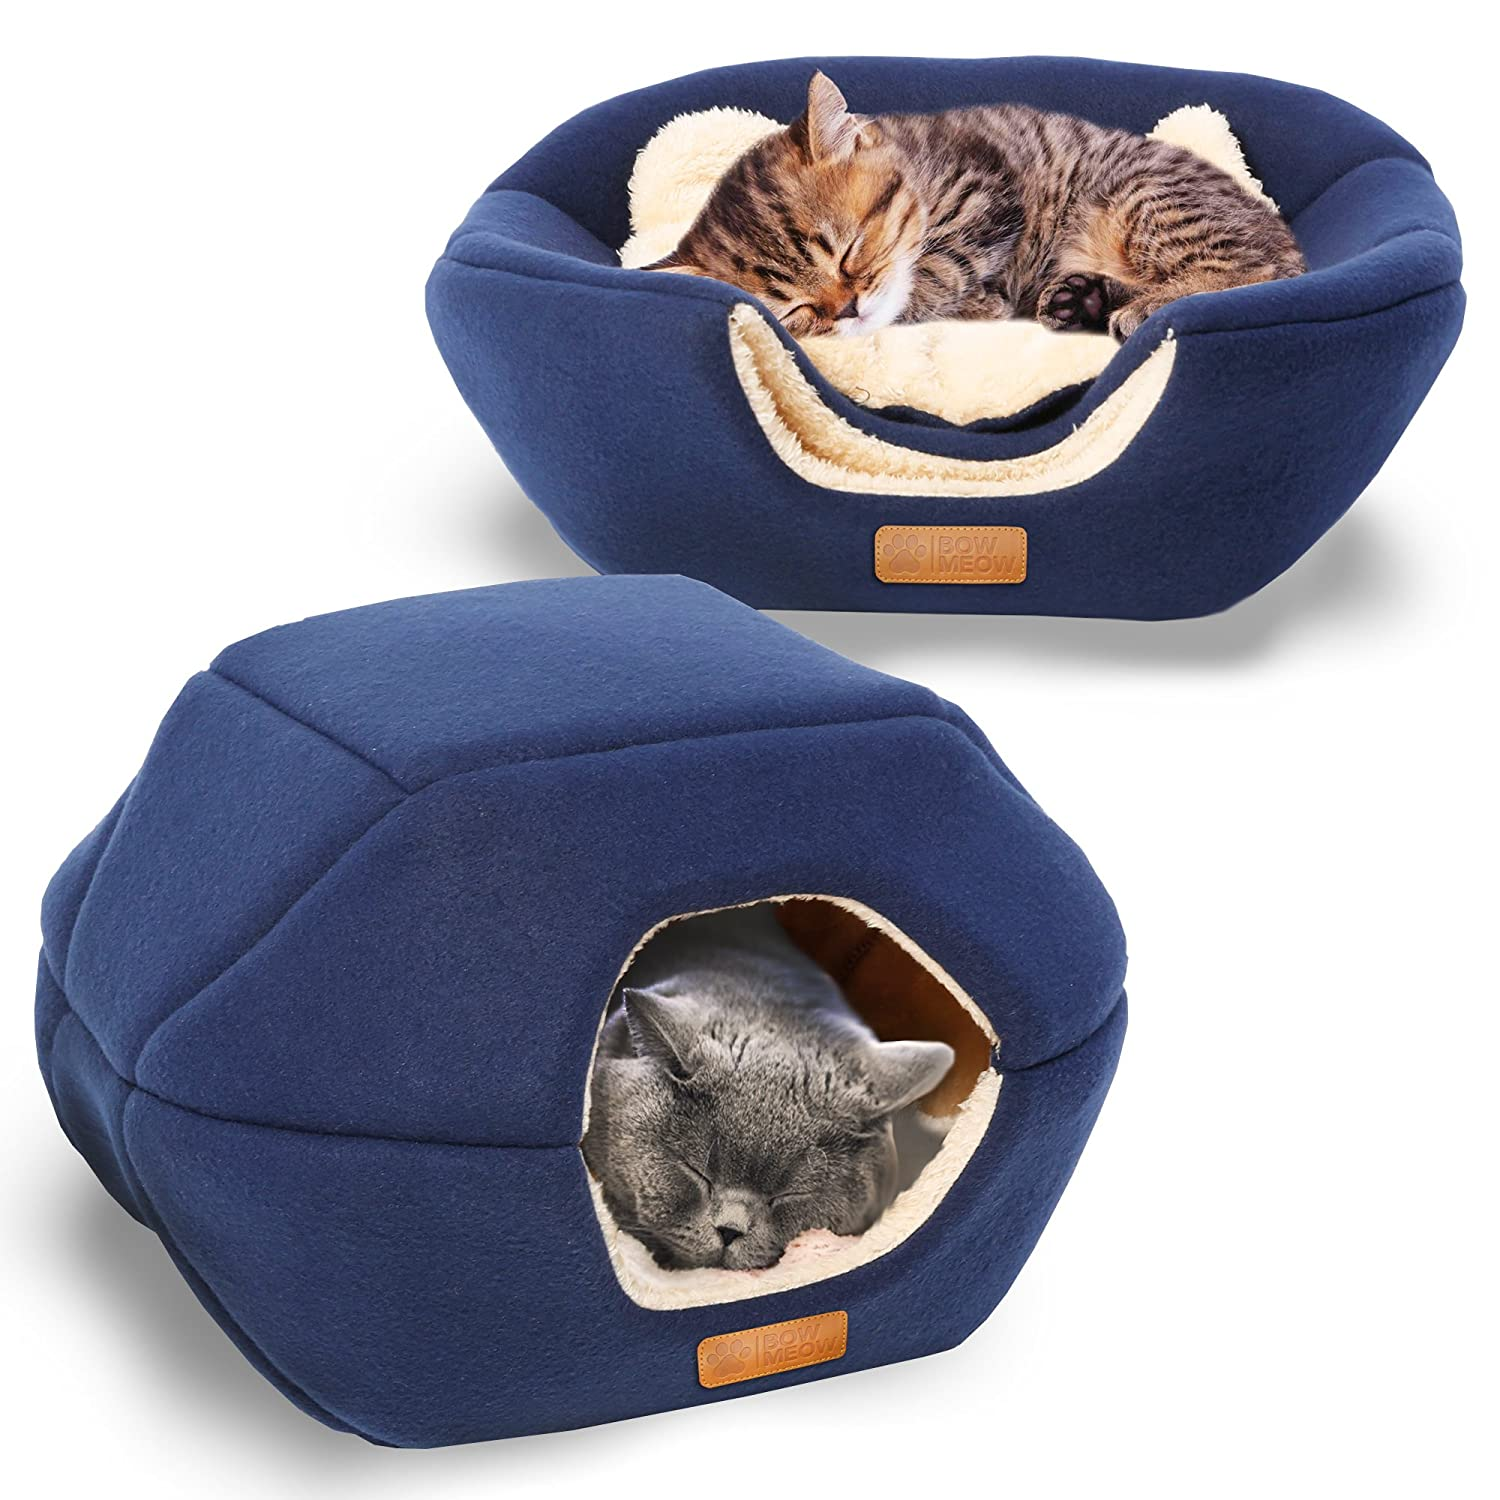 Navy bluee 18\ Navy bluee 18\ Premium Pet Bed Cave, Cat Bed and Cave, Small Dog Bed, 2-in-1 Foldable, Soft, Warm, Washable pet Bed with a Pillow. (18 X16 X14 , Navy bluee)